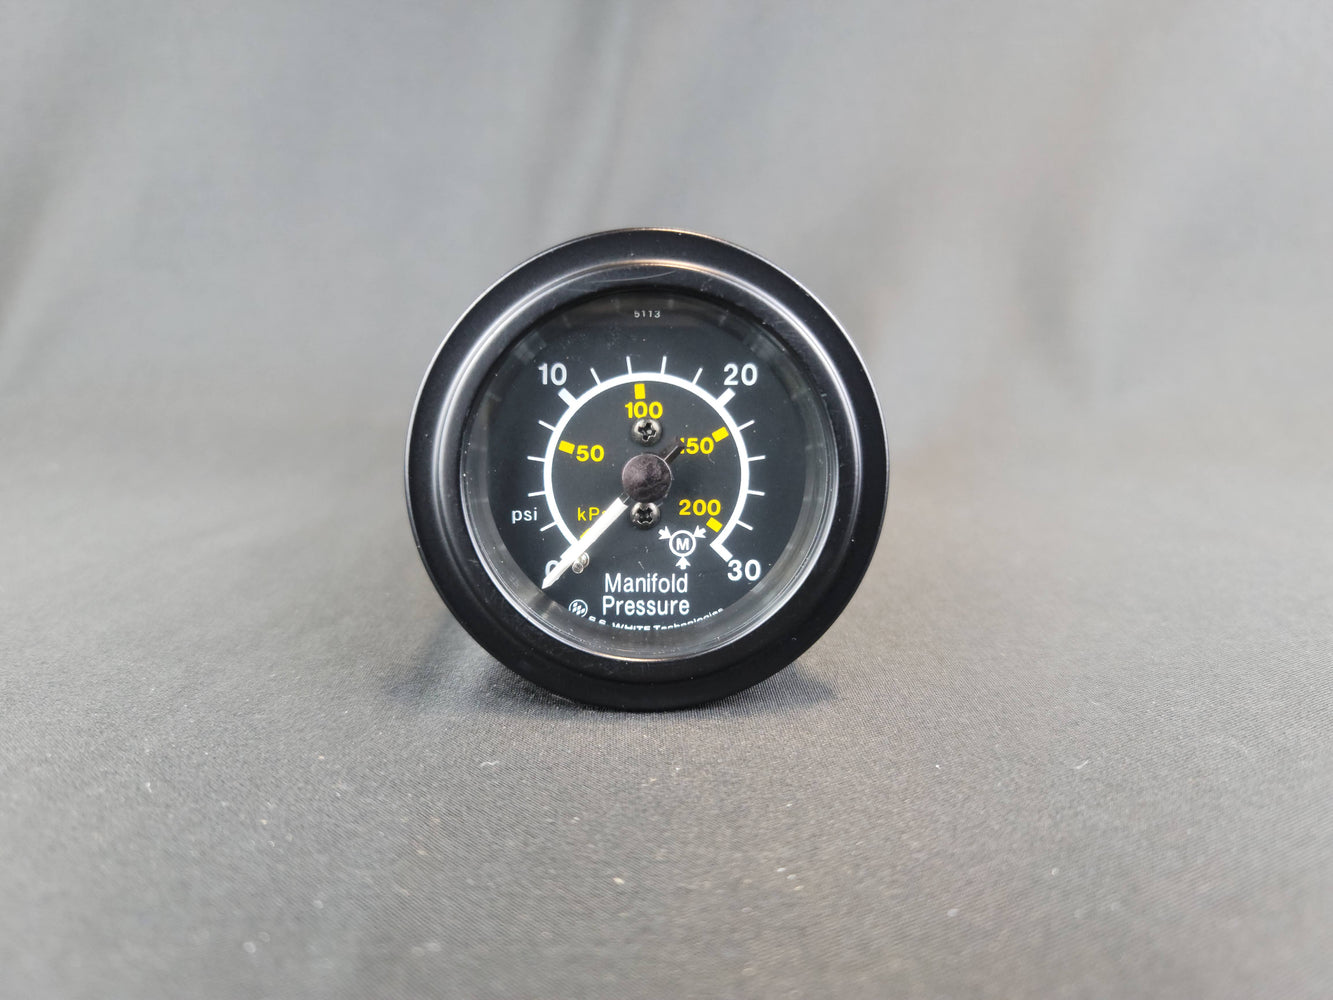 RECORD 2 Inch Manifold Pressure Gauge 0-30psi - HG202